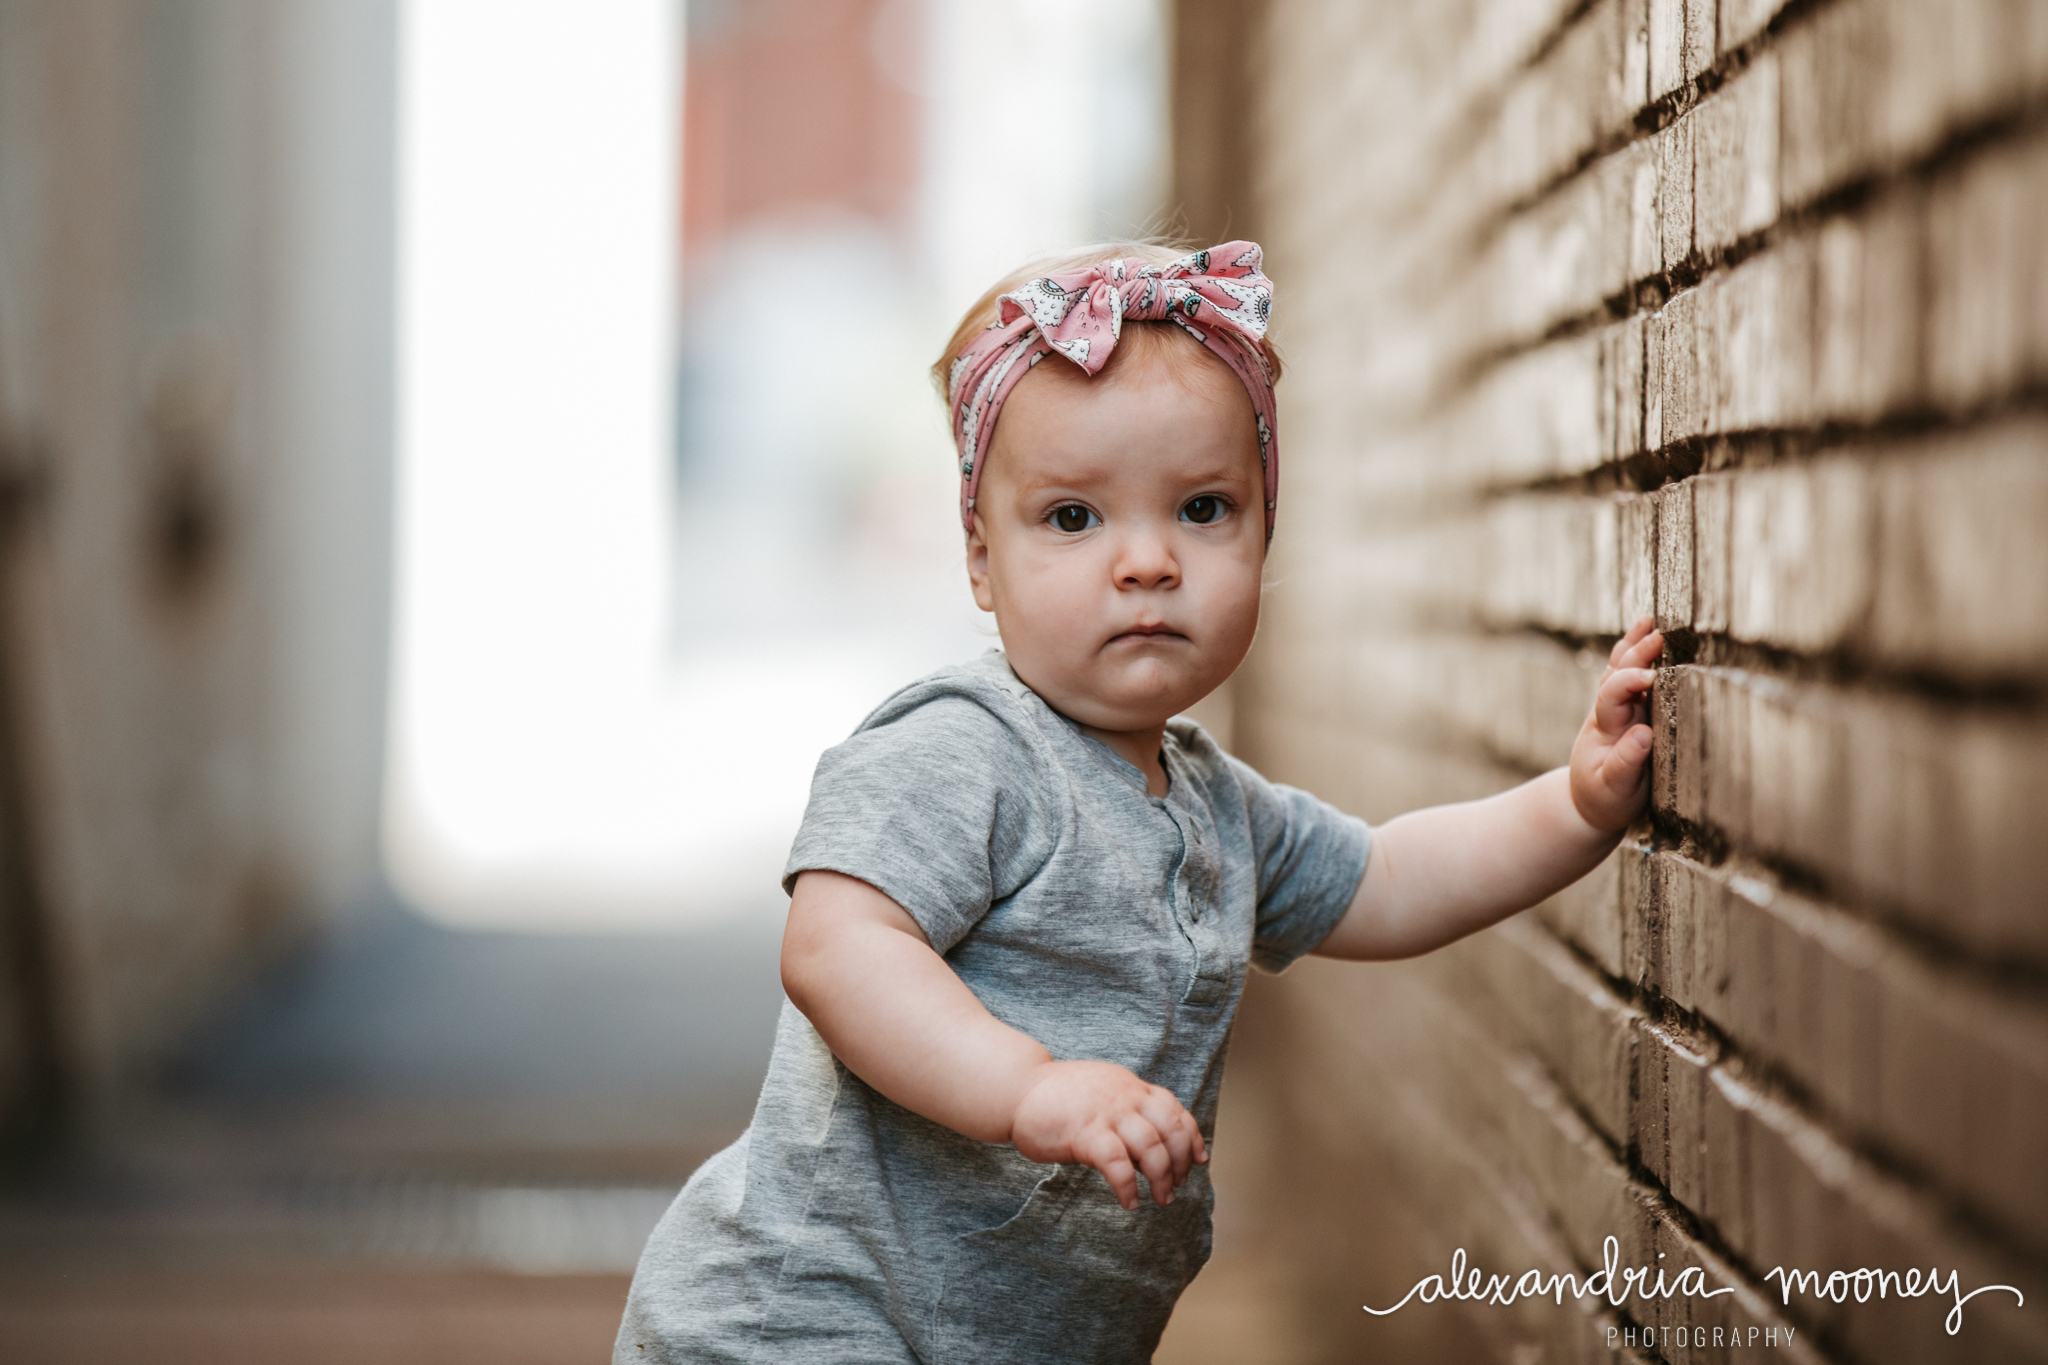 AnnieintheAlley_Watermarked-3.jpg